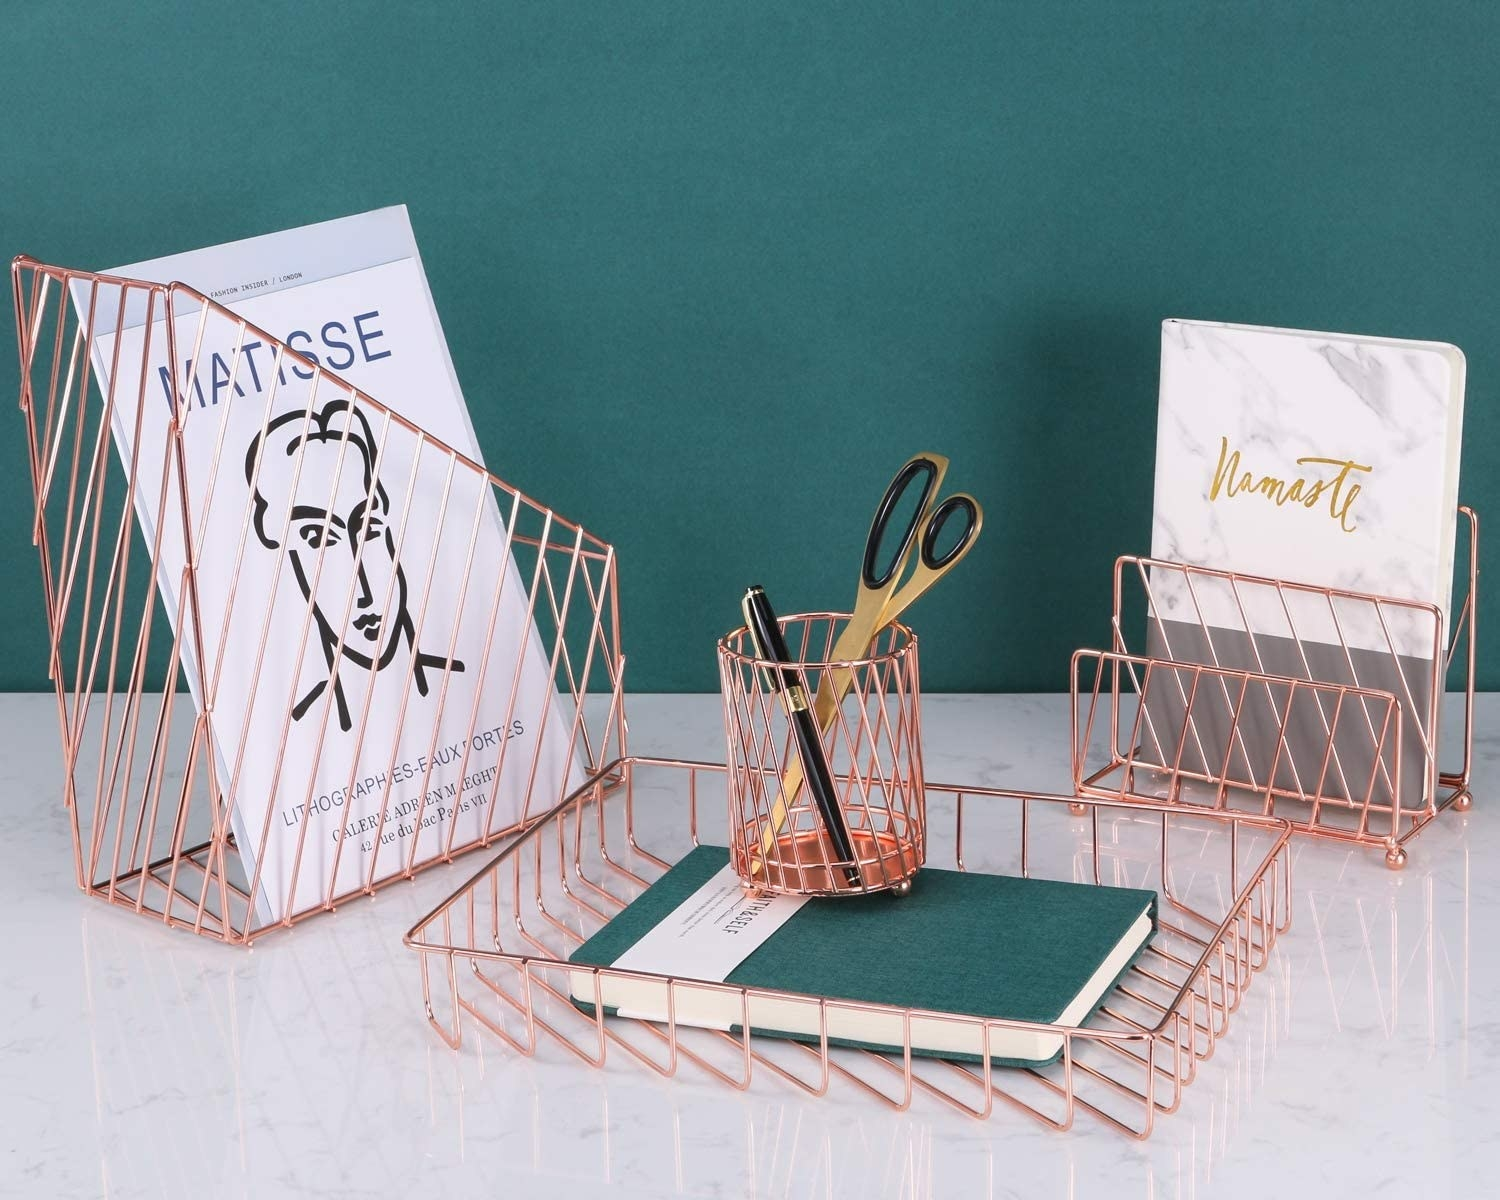 A wiry rectangular magazine holder with a single magazine in it, a rectangular document tray with a book in it, a cylinder pencil holder with a pen and pair of scissors in it, and a letter tray with a notebook in the second slot